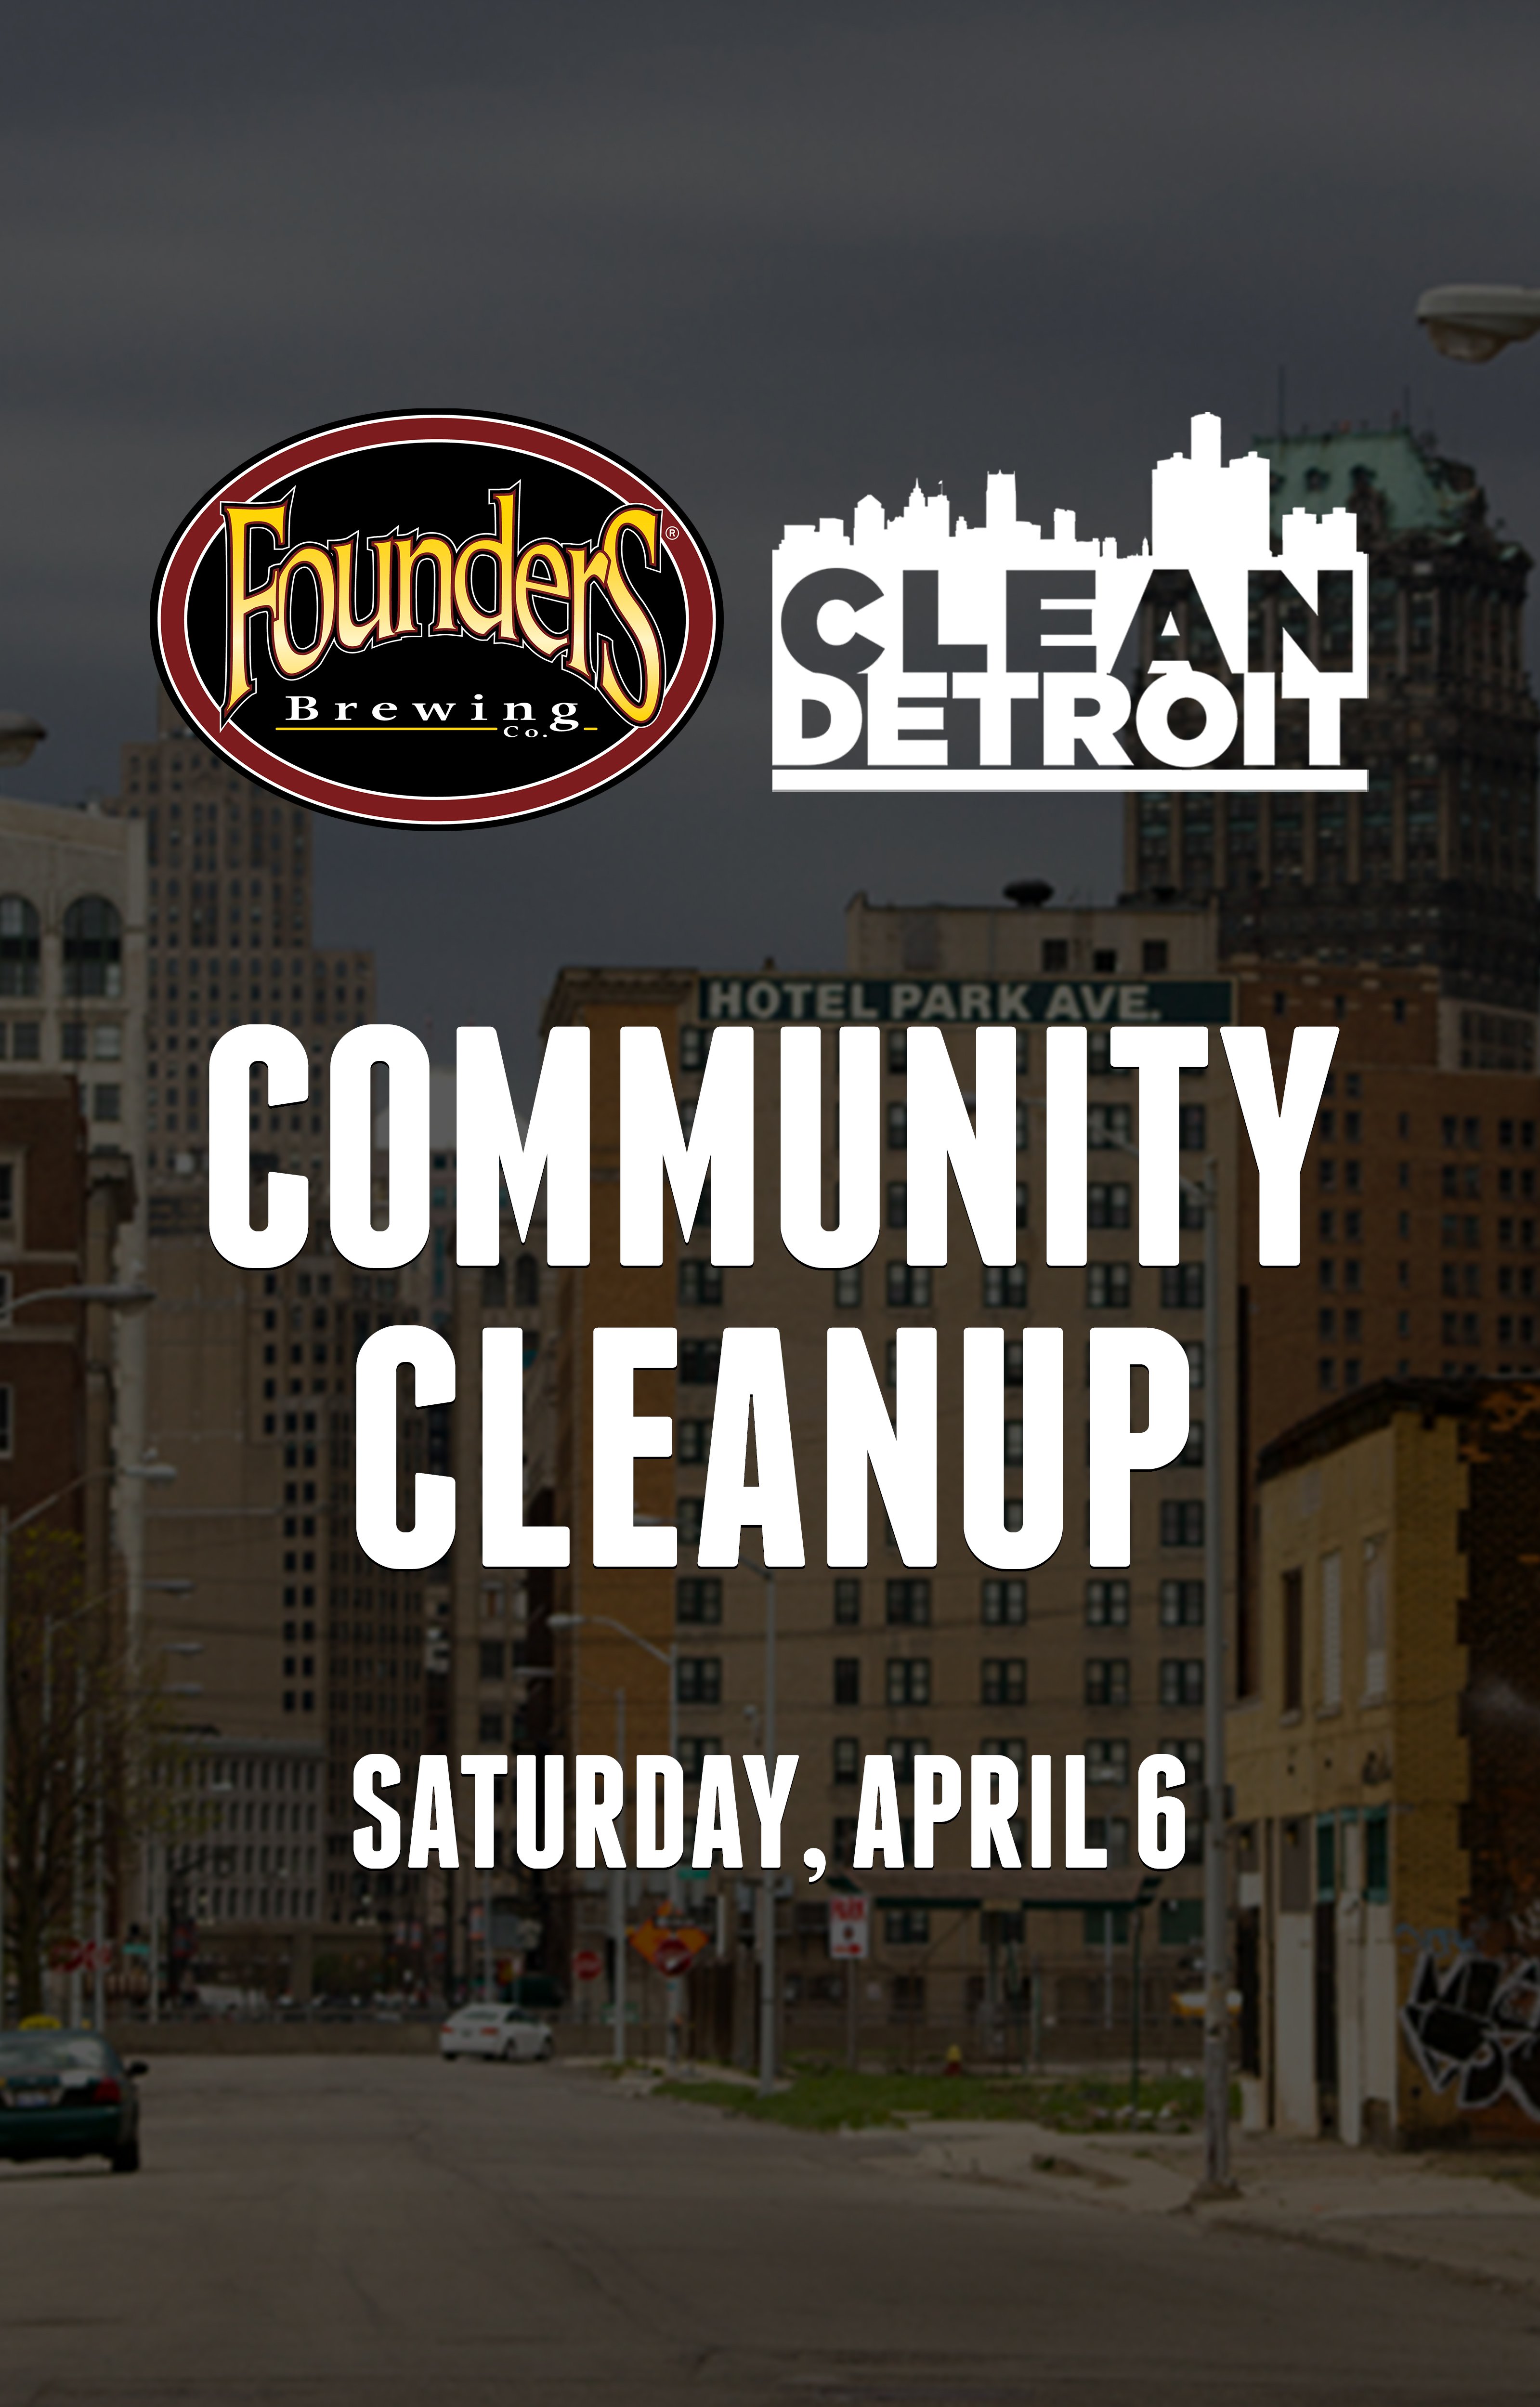 Founders and Clean Detroit Community Cleanup poster